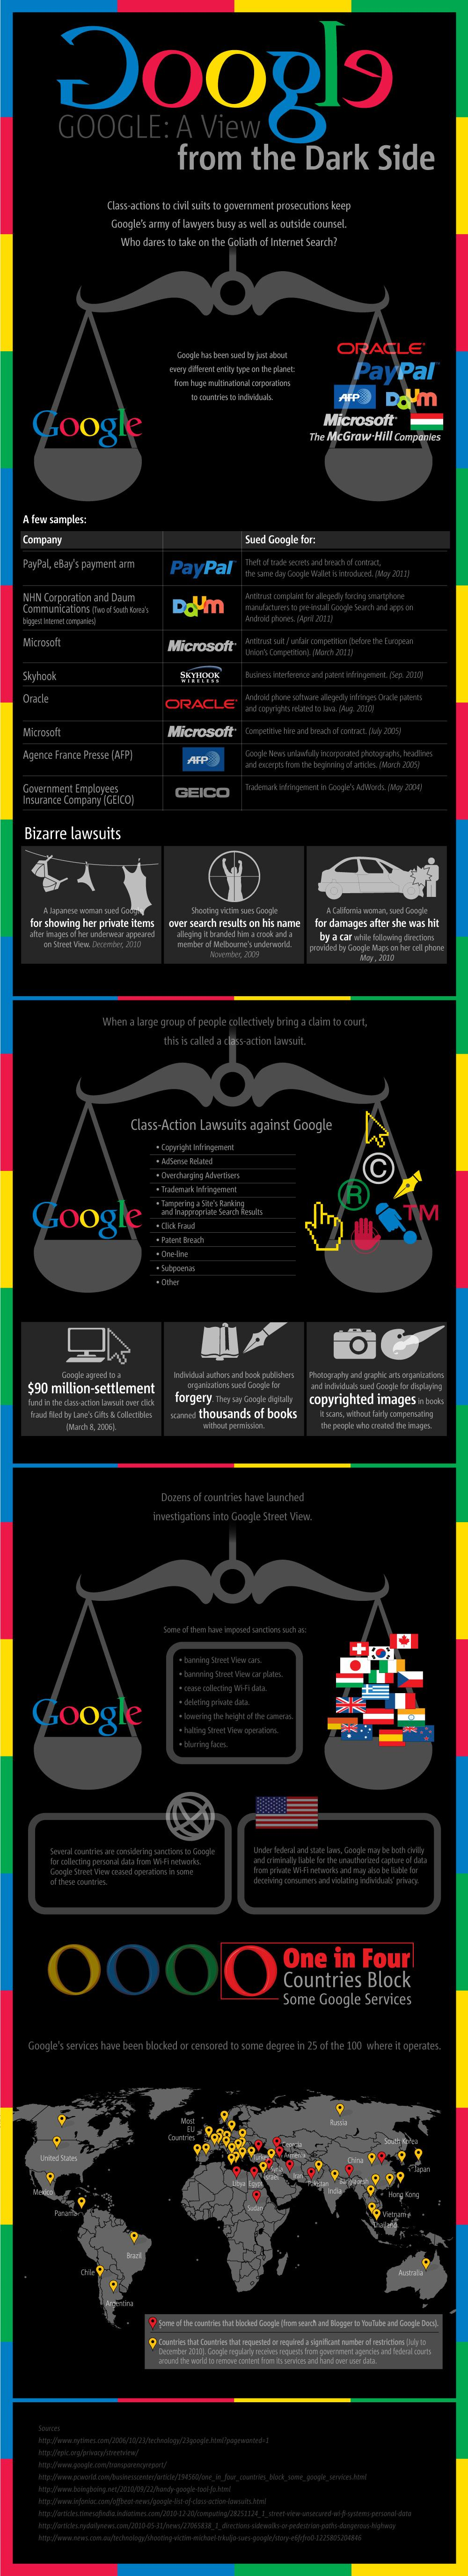 Taking a Look at Google Lawsuits [INFOGRAPHIC]